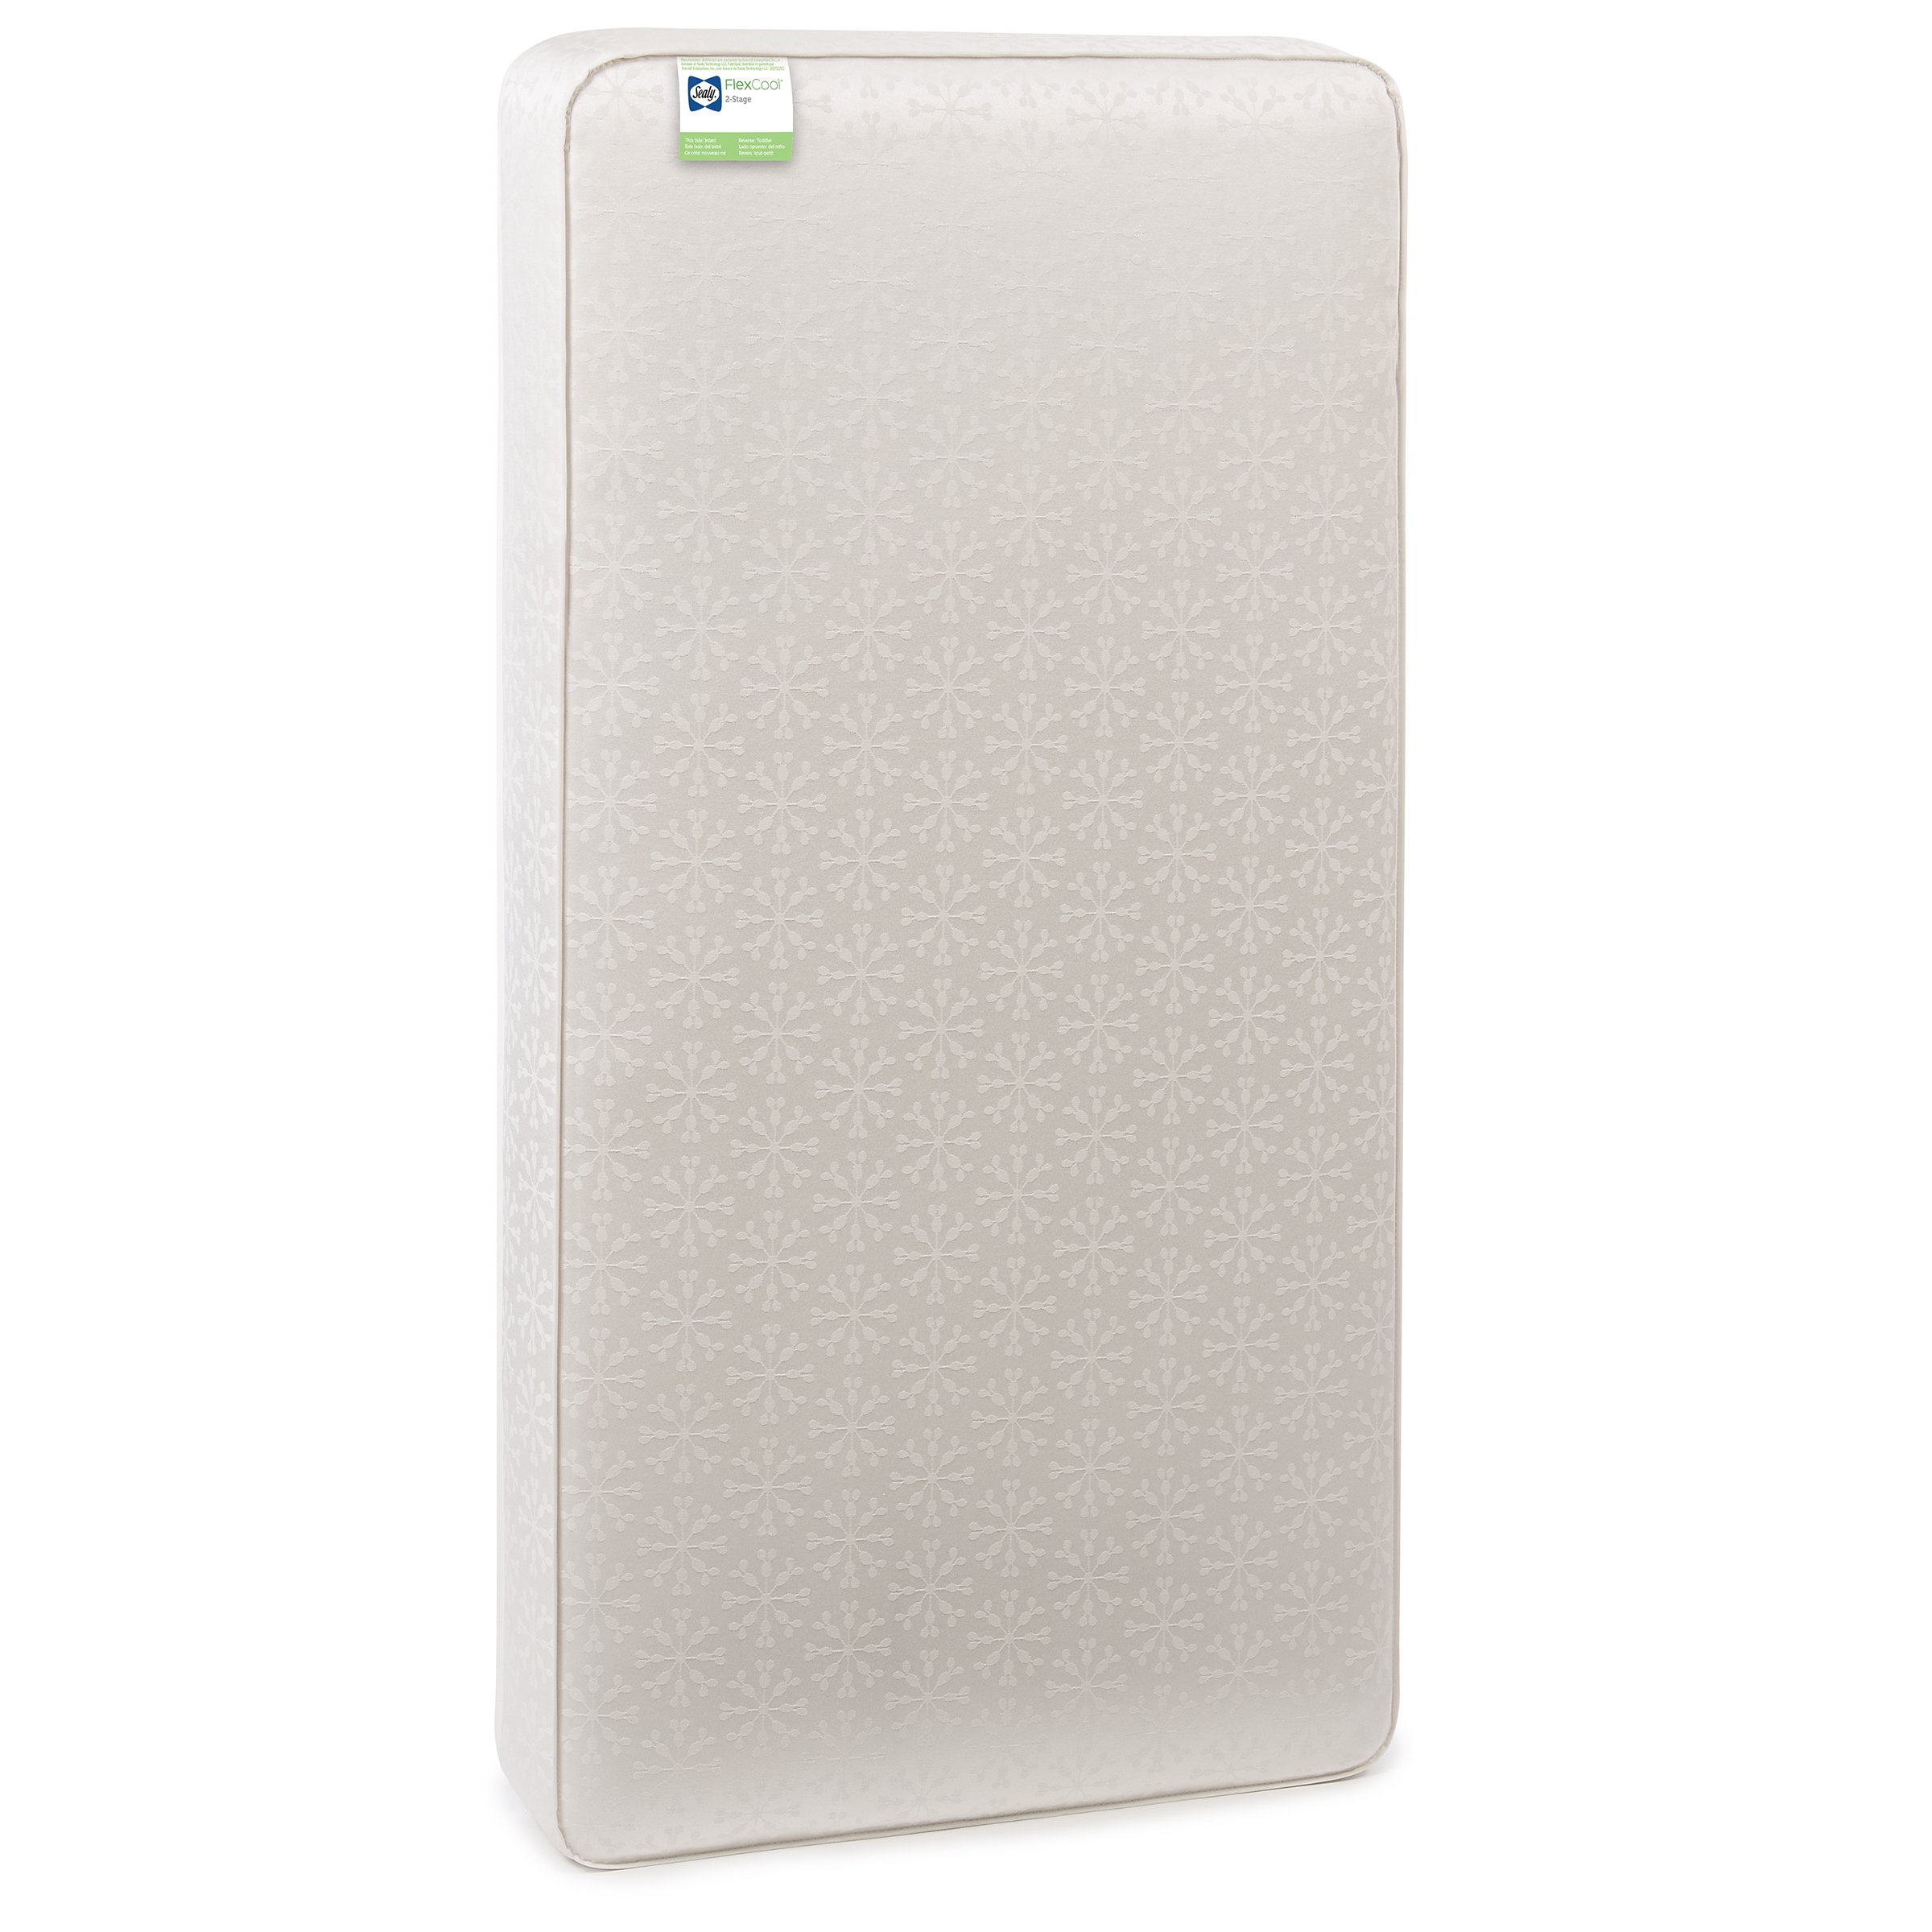 Sealy Flex Cool 2-Stage Waterproof Airy Dual Firmness Toddler & Baby Crib Mattress, 51.7''x 27.3'' by Sealy